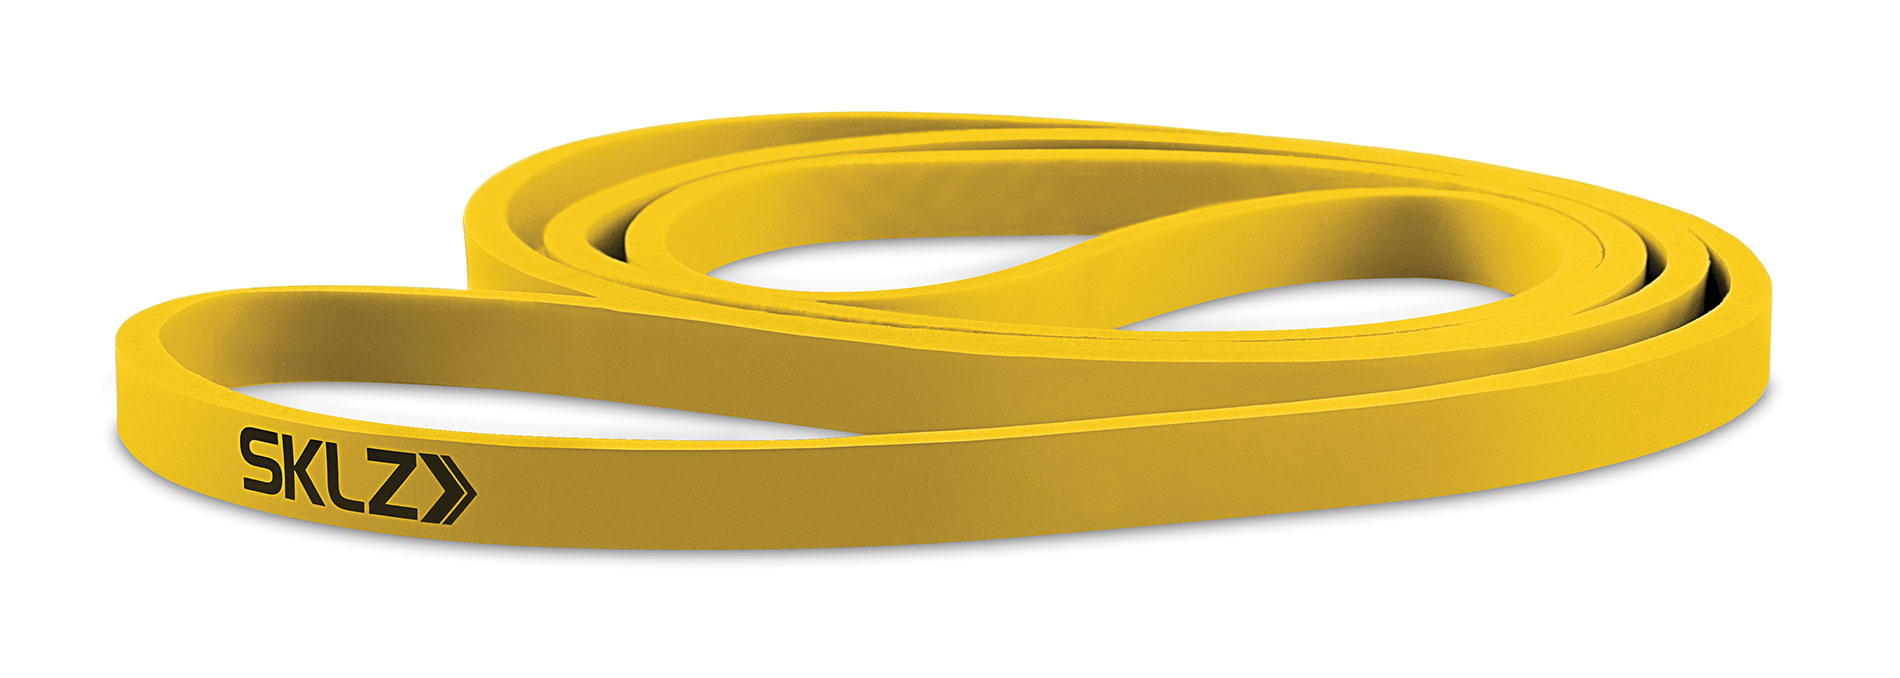 SKLZ Pro Bands Light Yellow | Træningsmåtter og svedcover